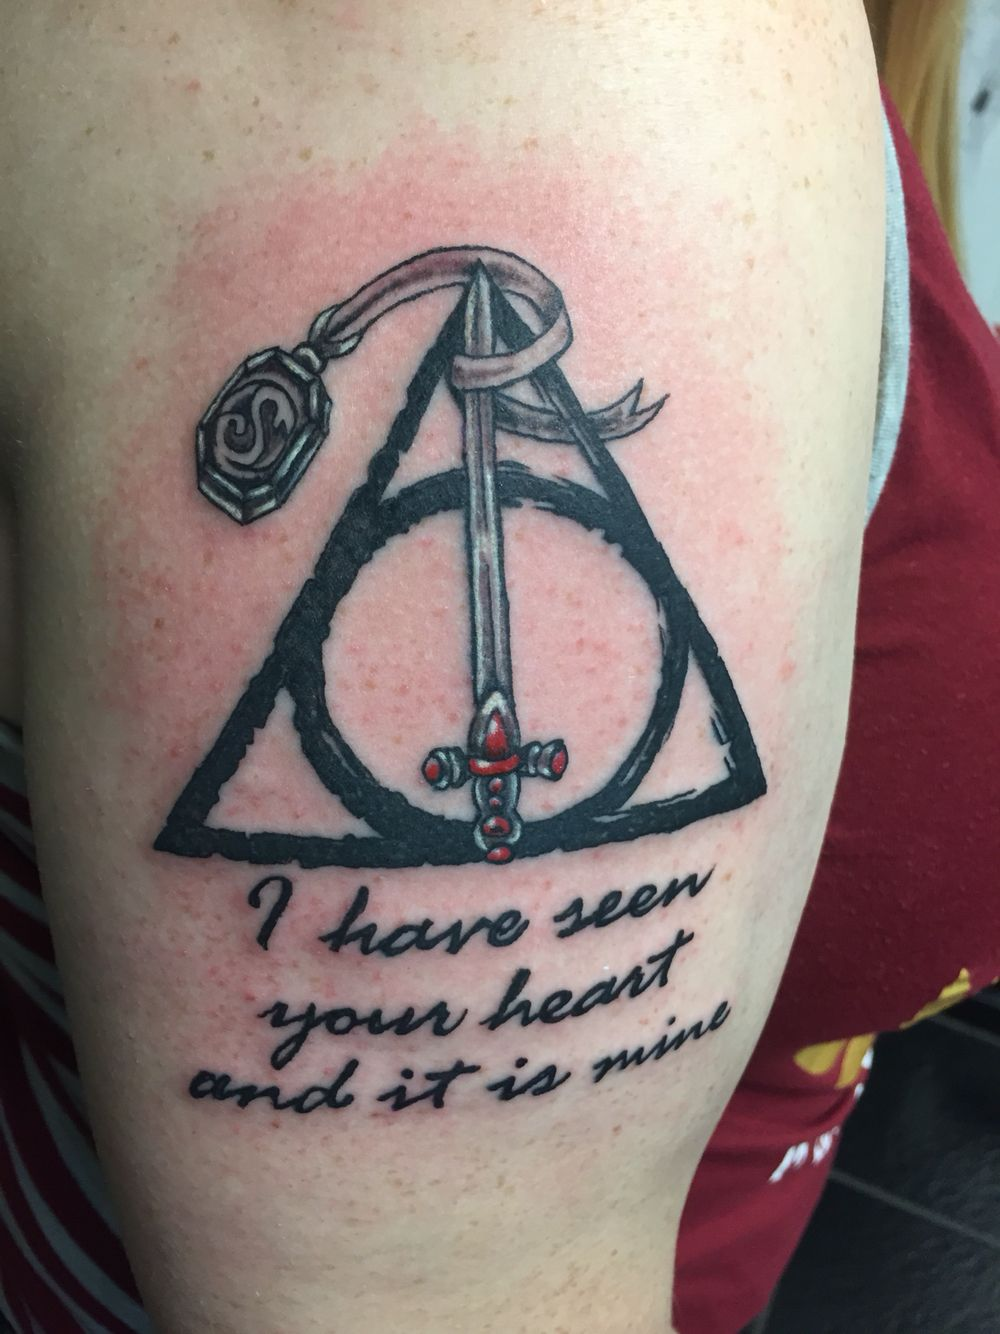 New Harry Potter Tattoo Deathly Hallows With The Sword Of Gryffindor And Slytherin S Locket With A Harry Potter Tattoo Harry Potter Tattoos Slytherin Tattoo